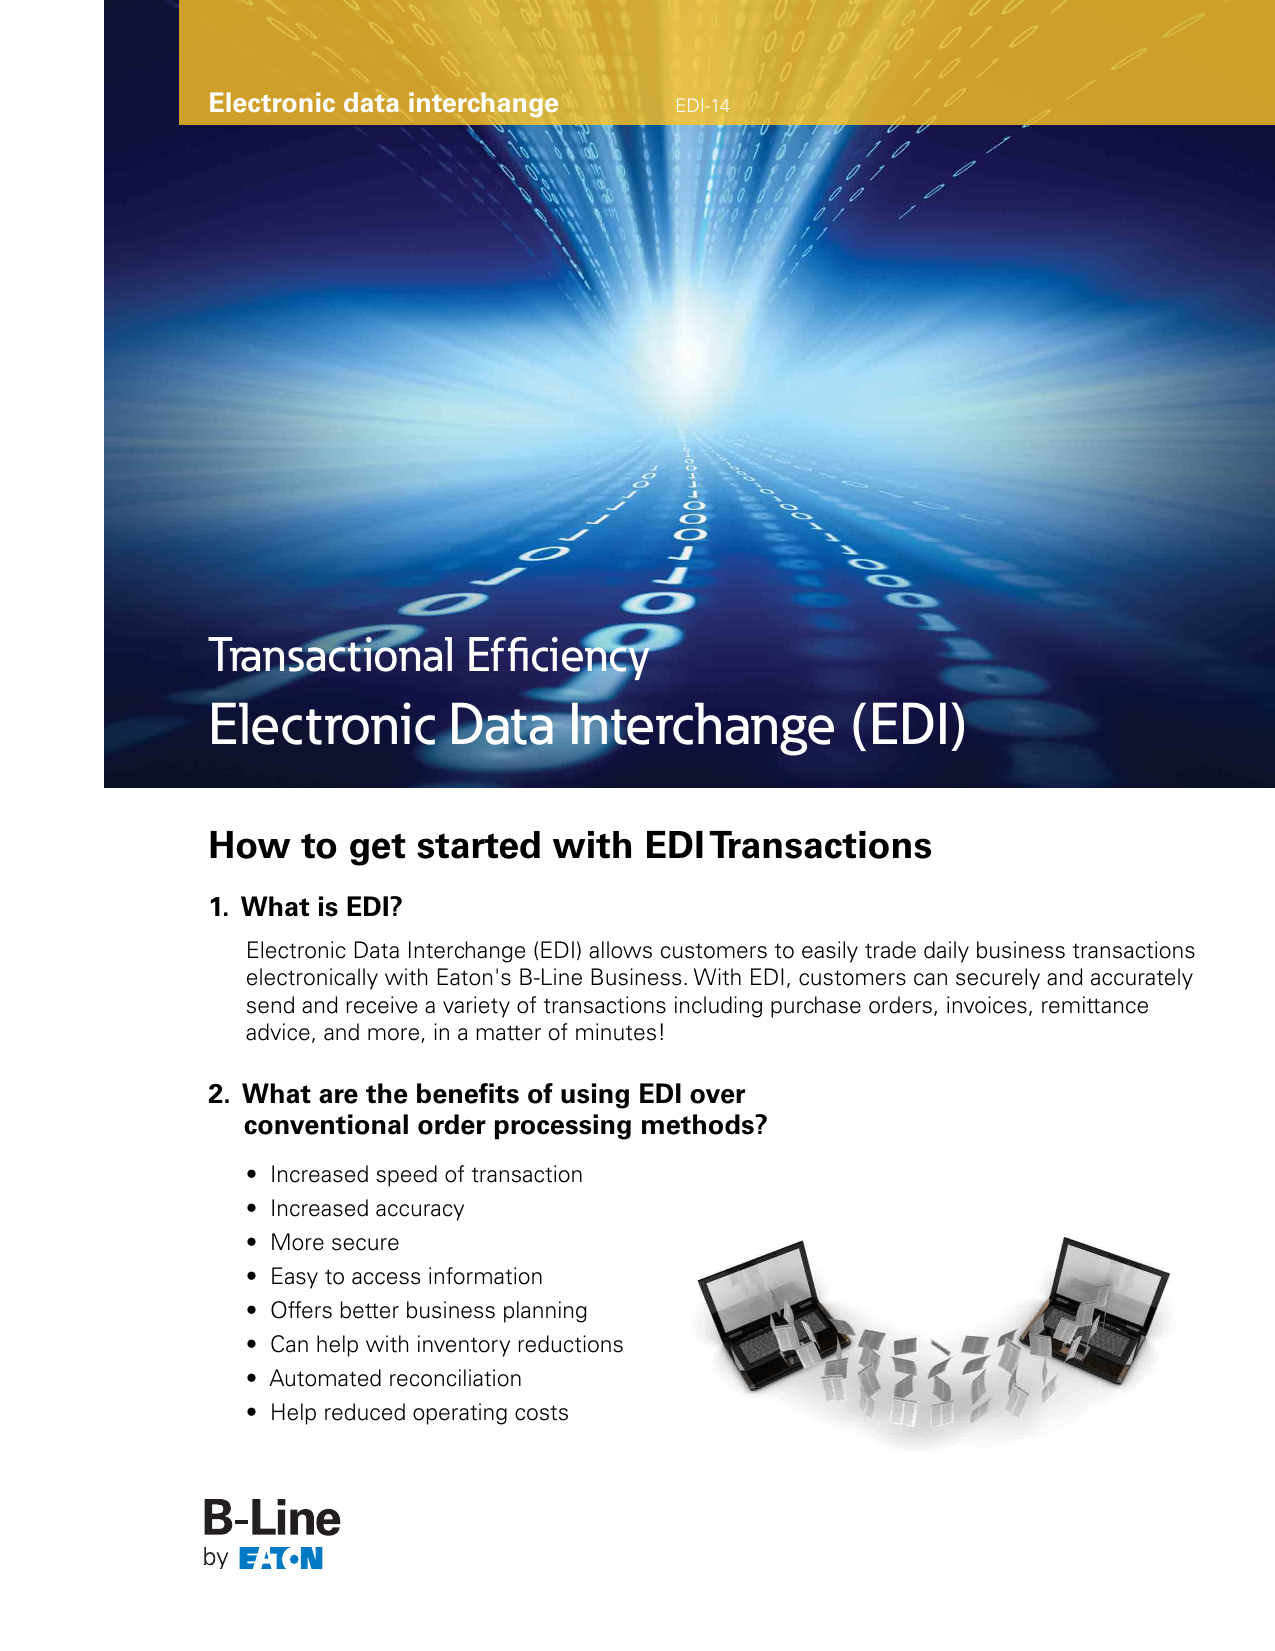 Electronic Data Interchange (EDI) Transactional Efficiency 1